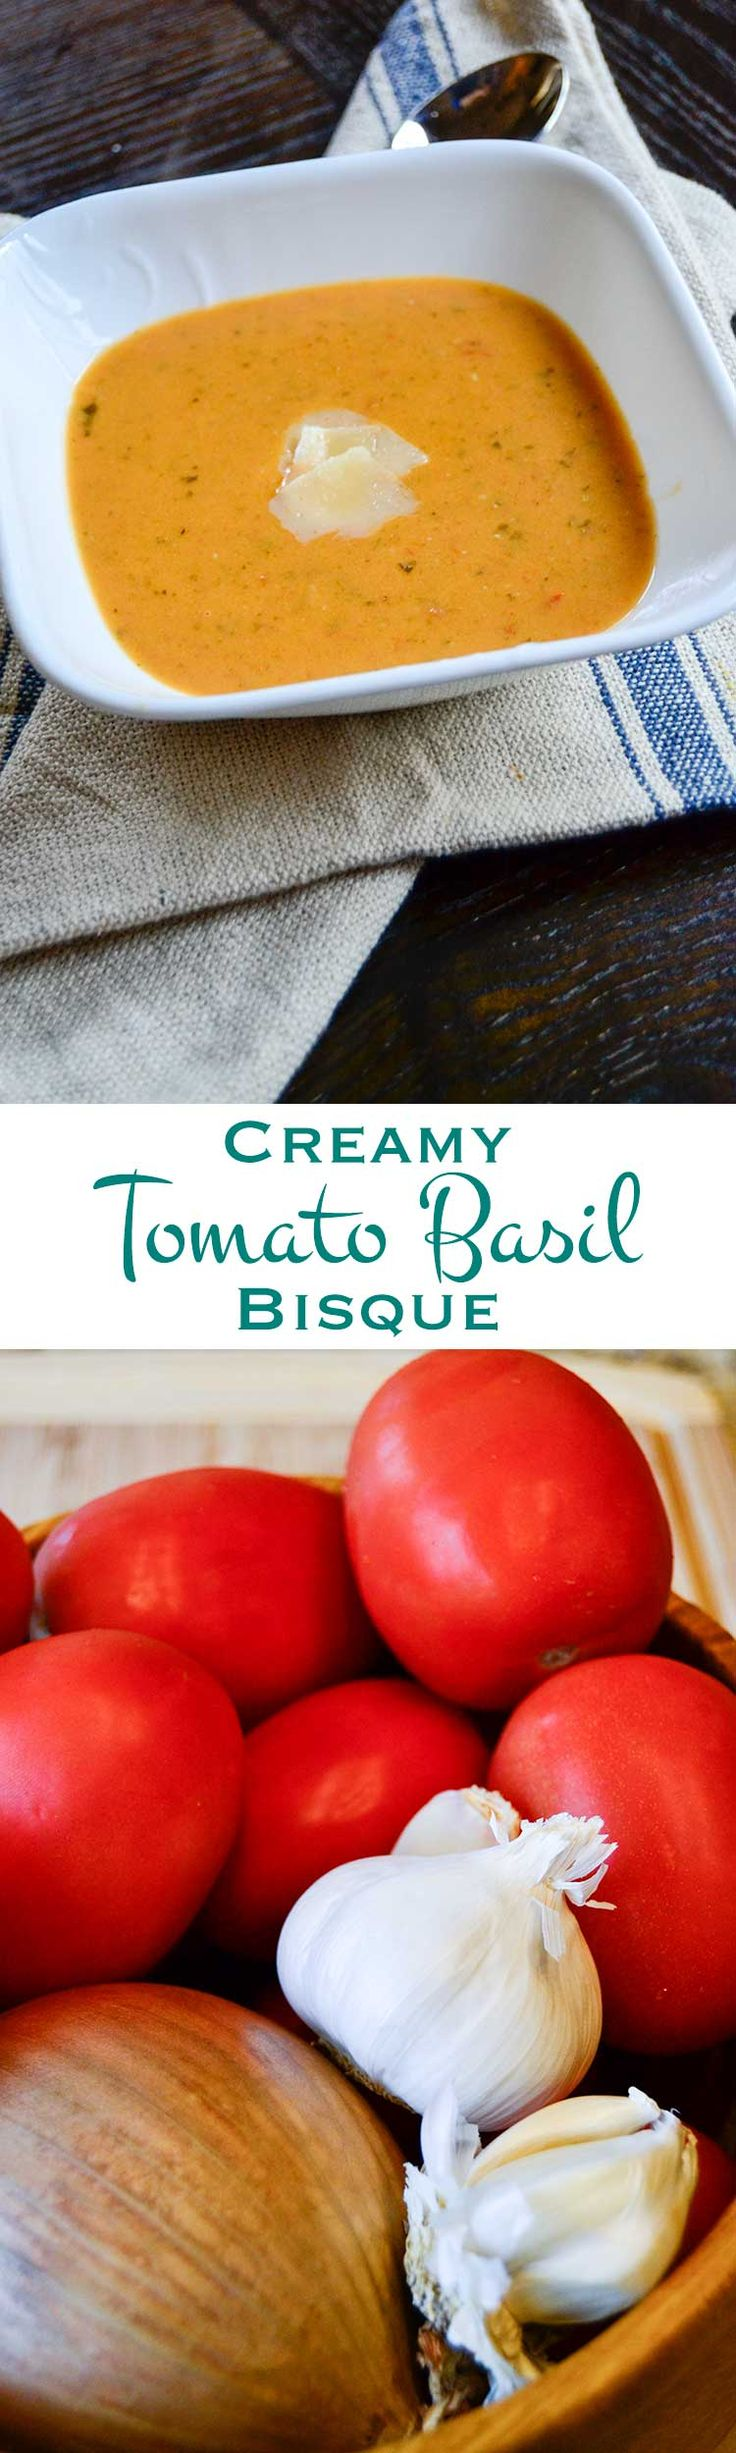 creamy-tomato-basil-bisque and fresh tomatoes, garlic and onion